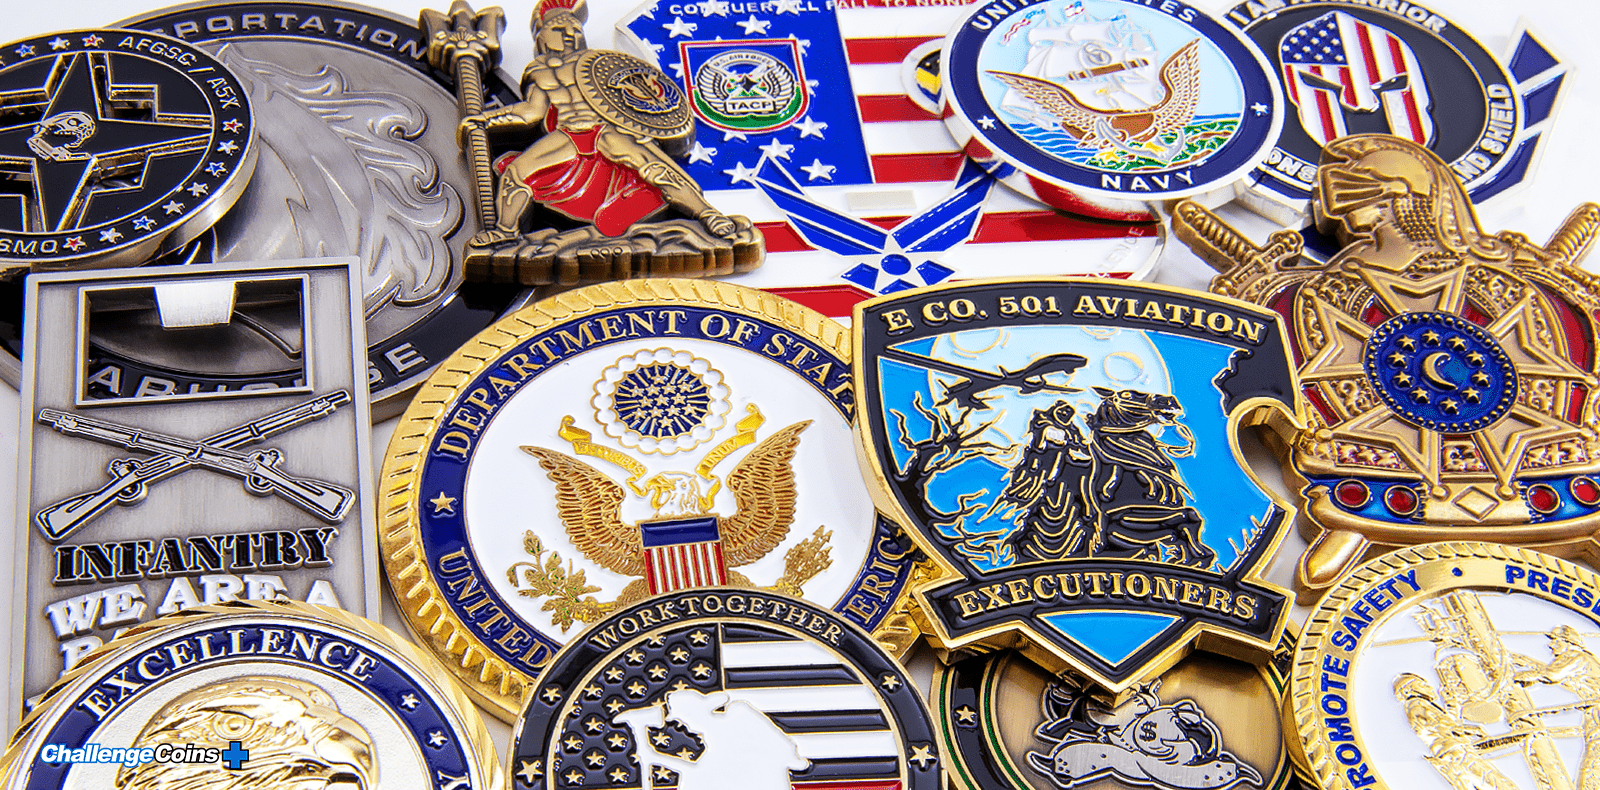 Why order challenge coins